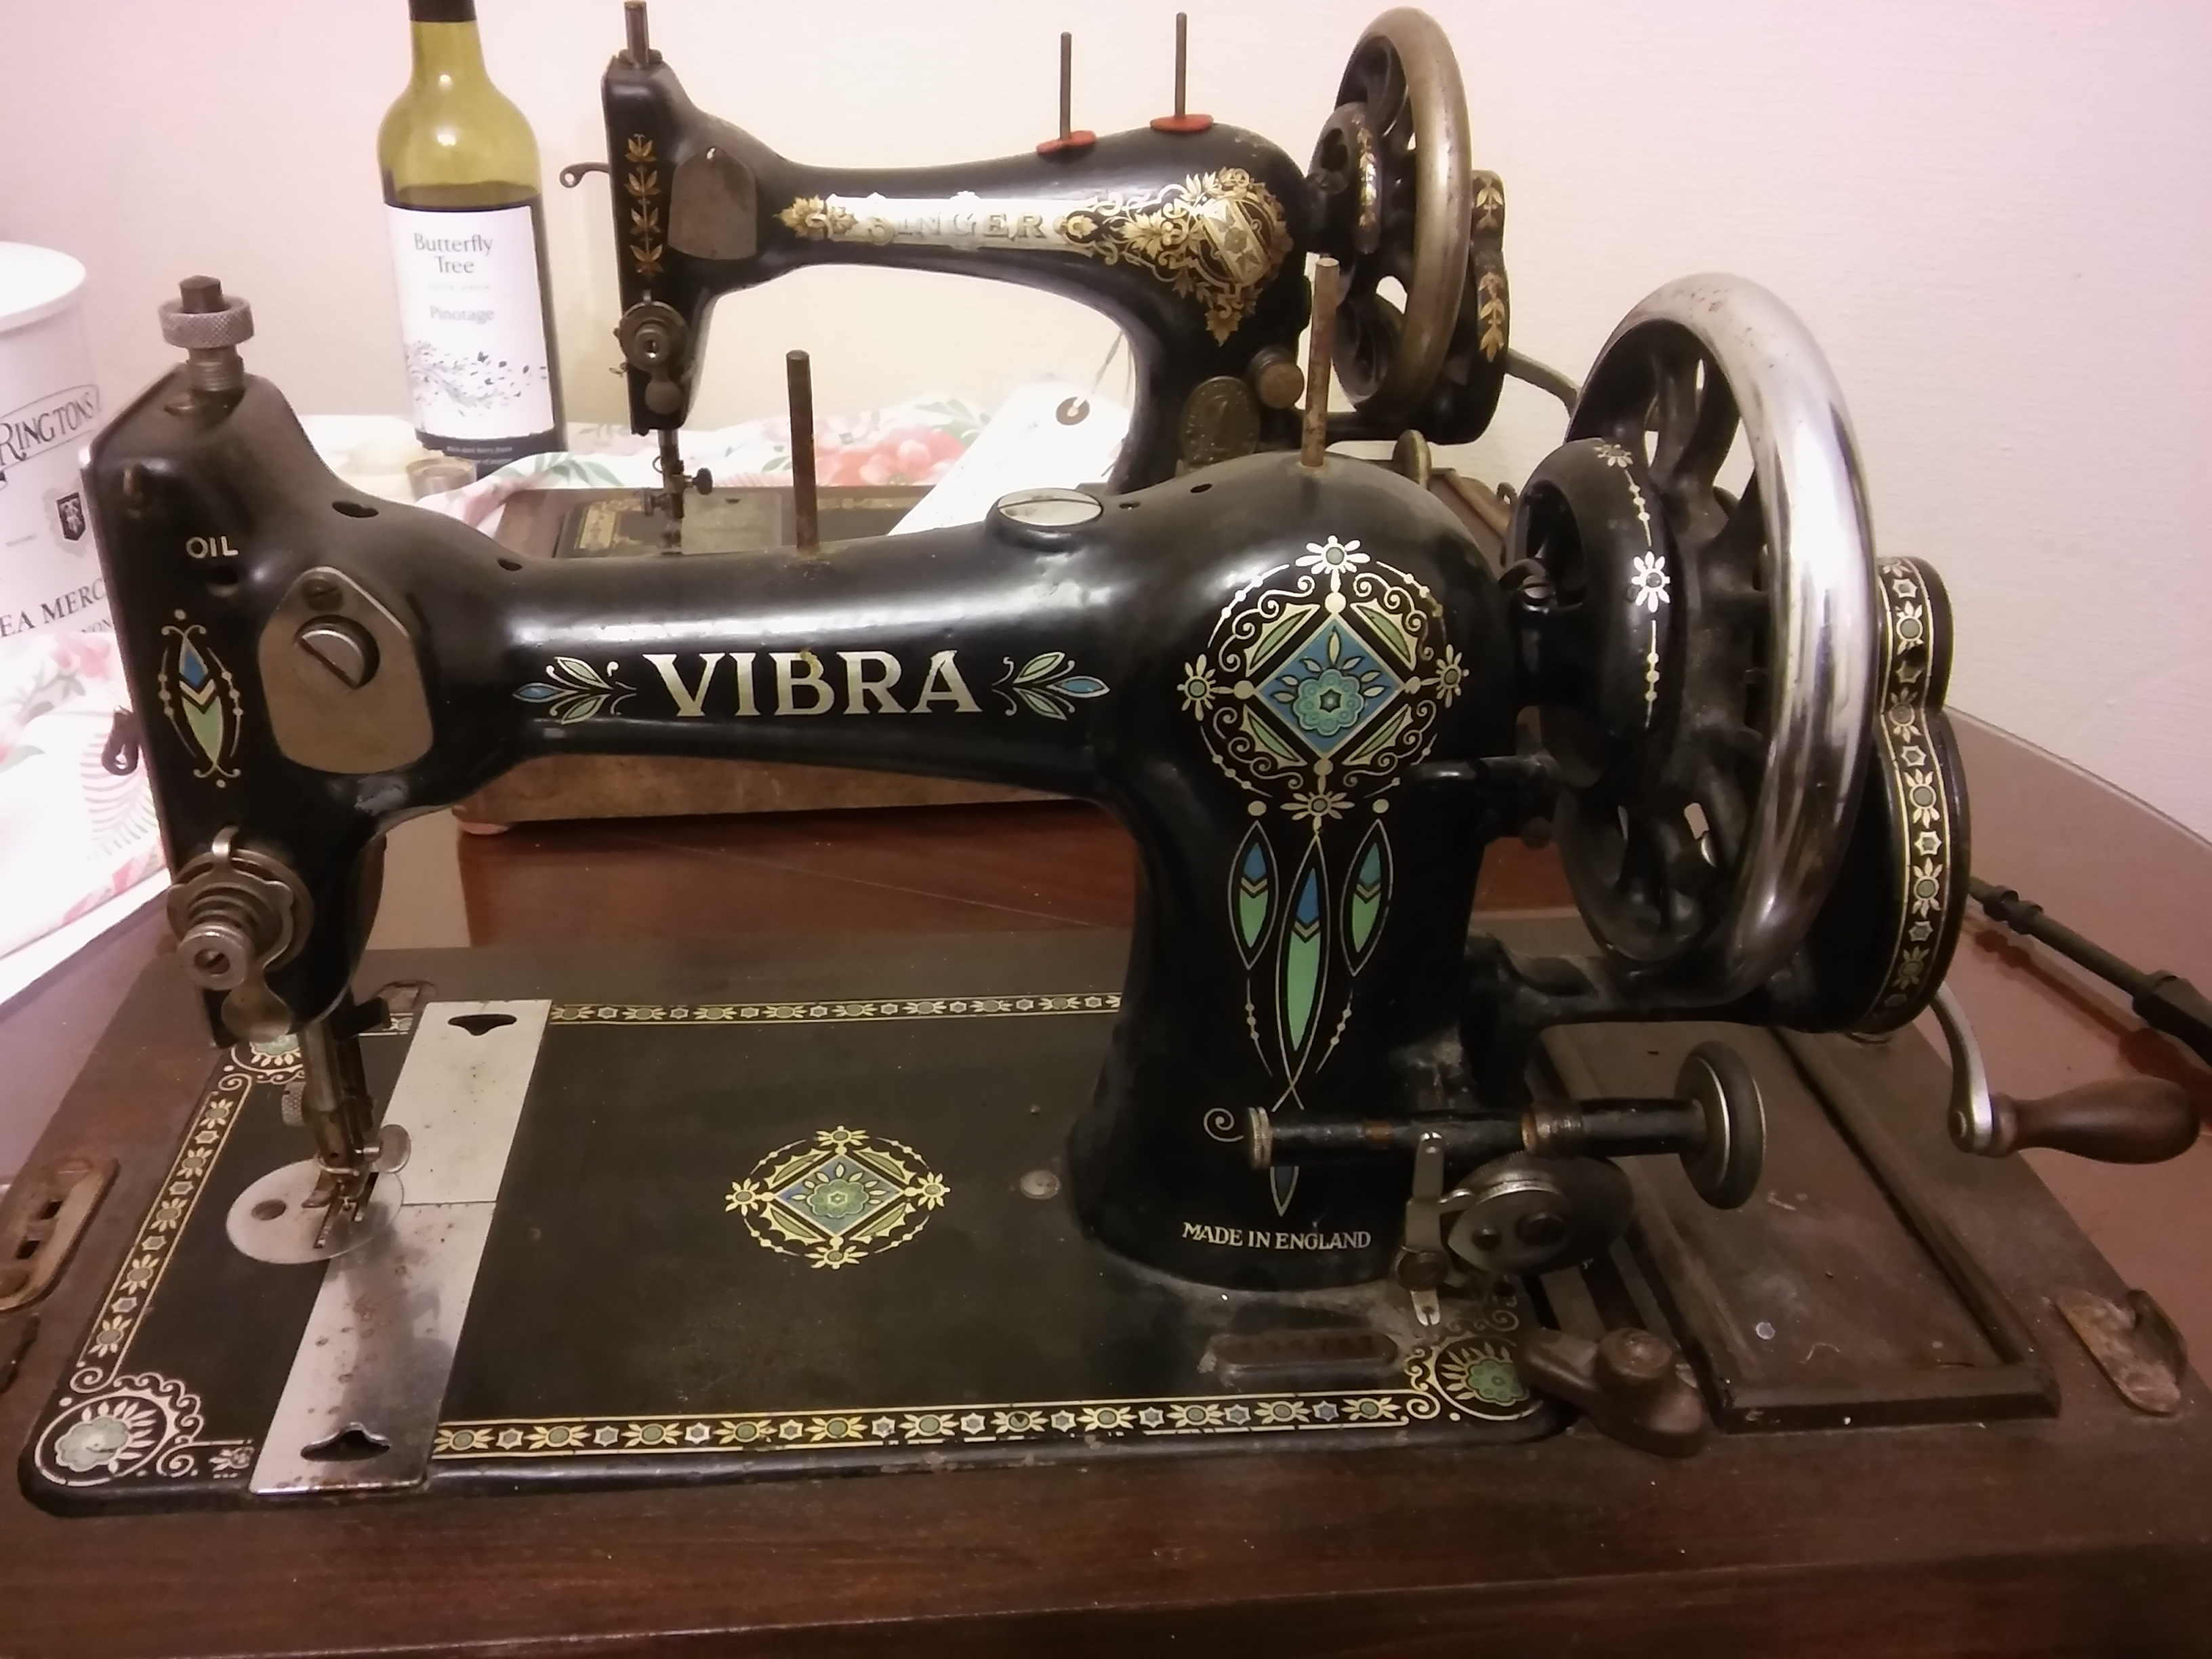 vibra-sewing-machine